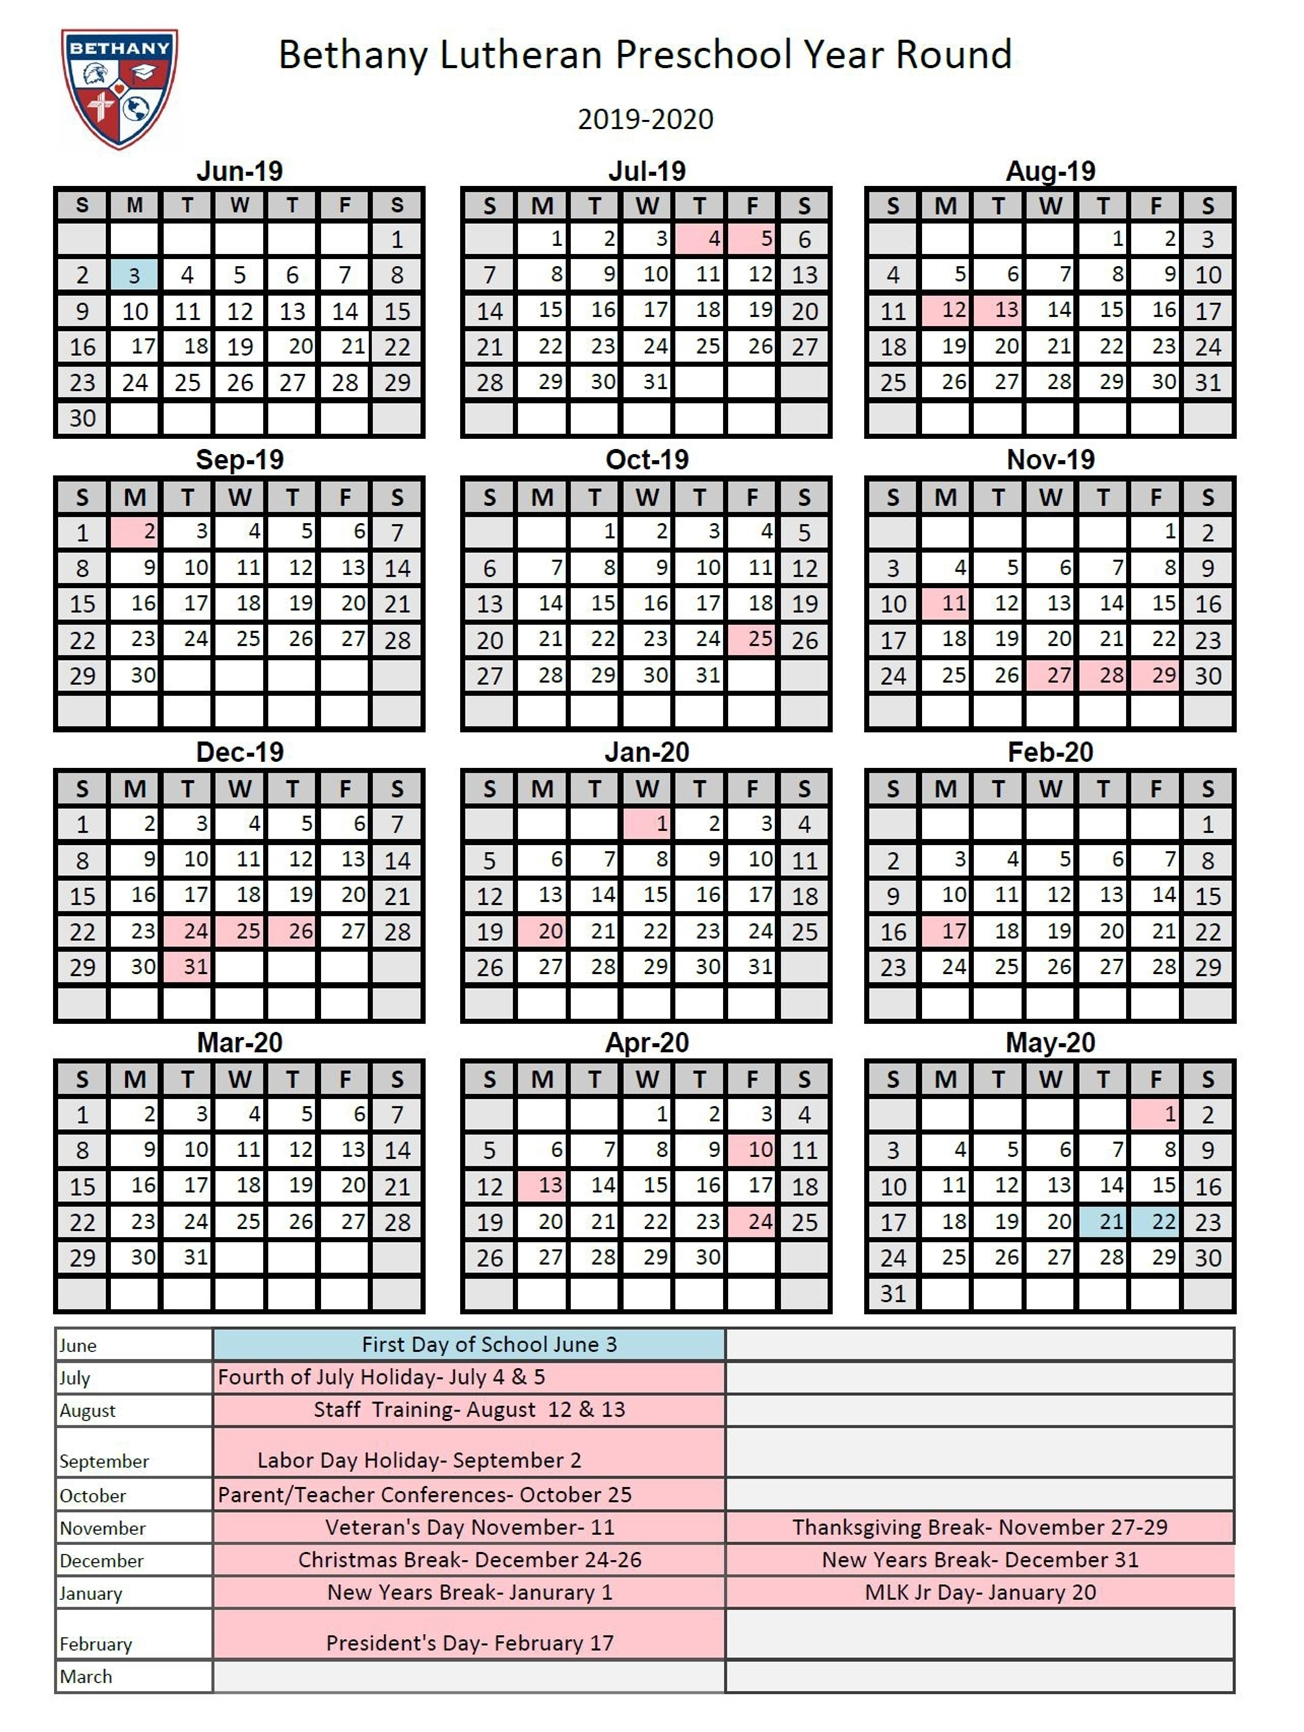 Year Round Calendar | Bethany Lutheran Ministries